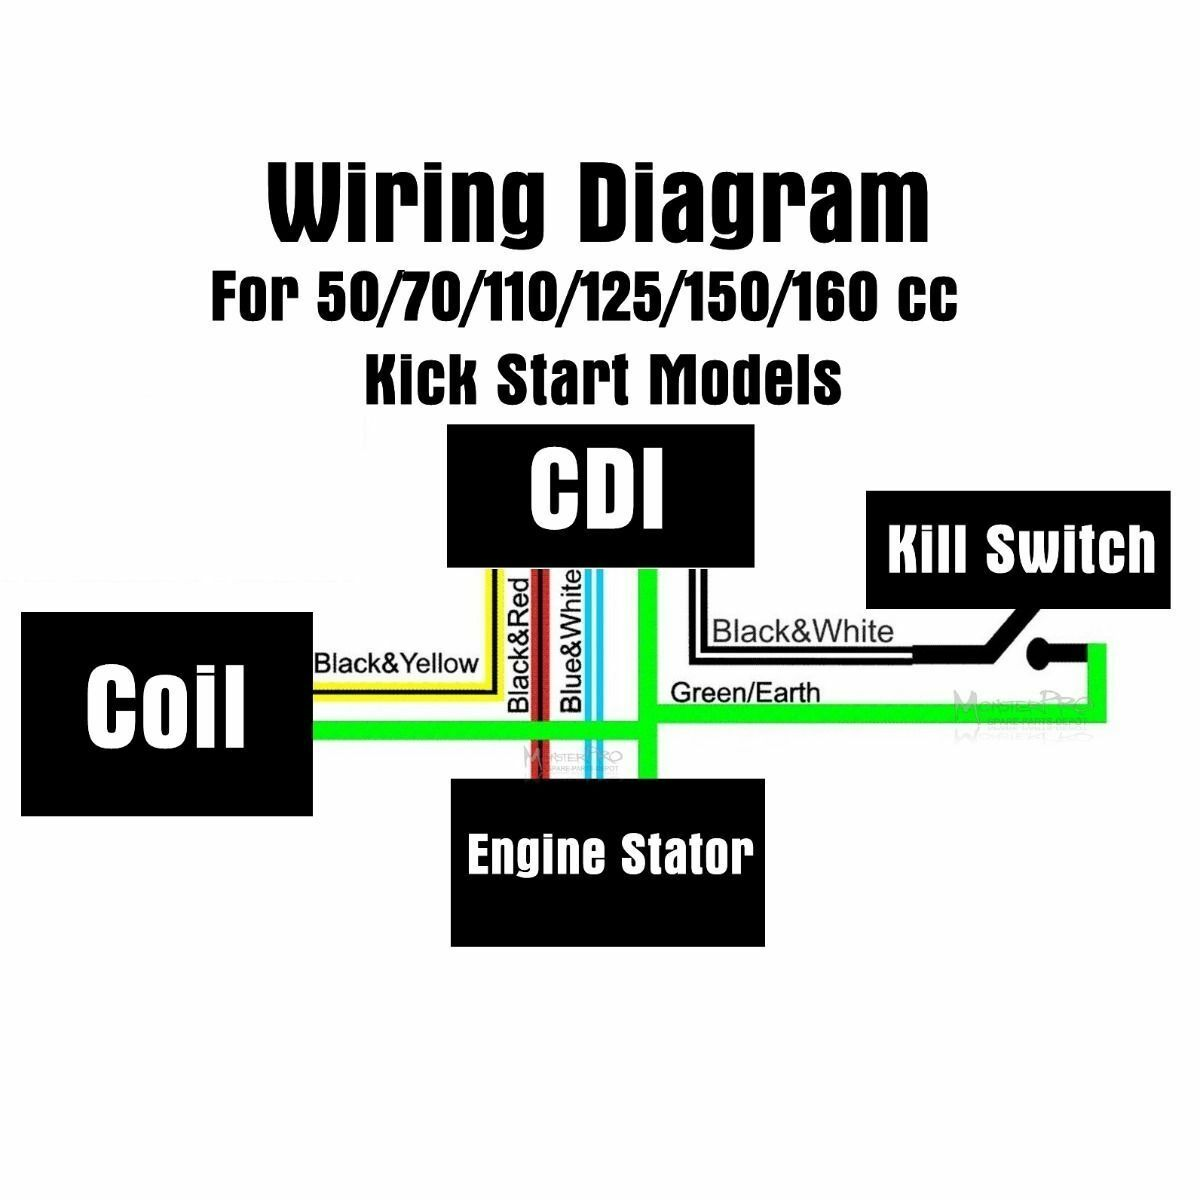 Spark Plug Coil Cdi For 90cc 125cc 140cc 150cc Dirt Quad Pit Crf50 Kick Start Wiring Diagram Zongshen Lifan